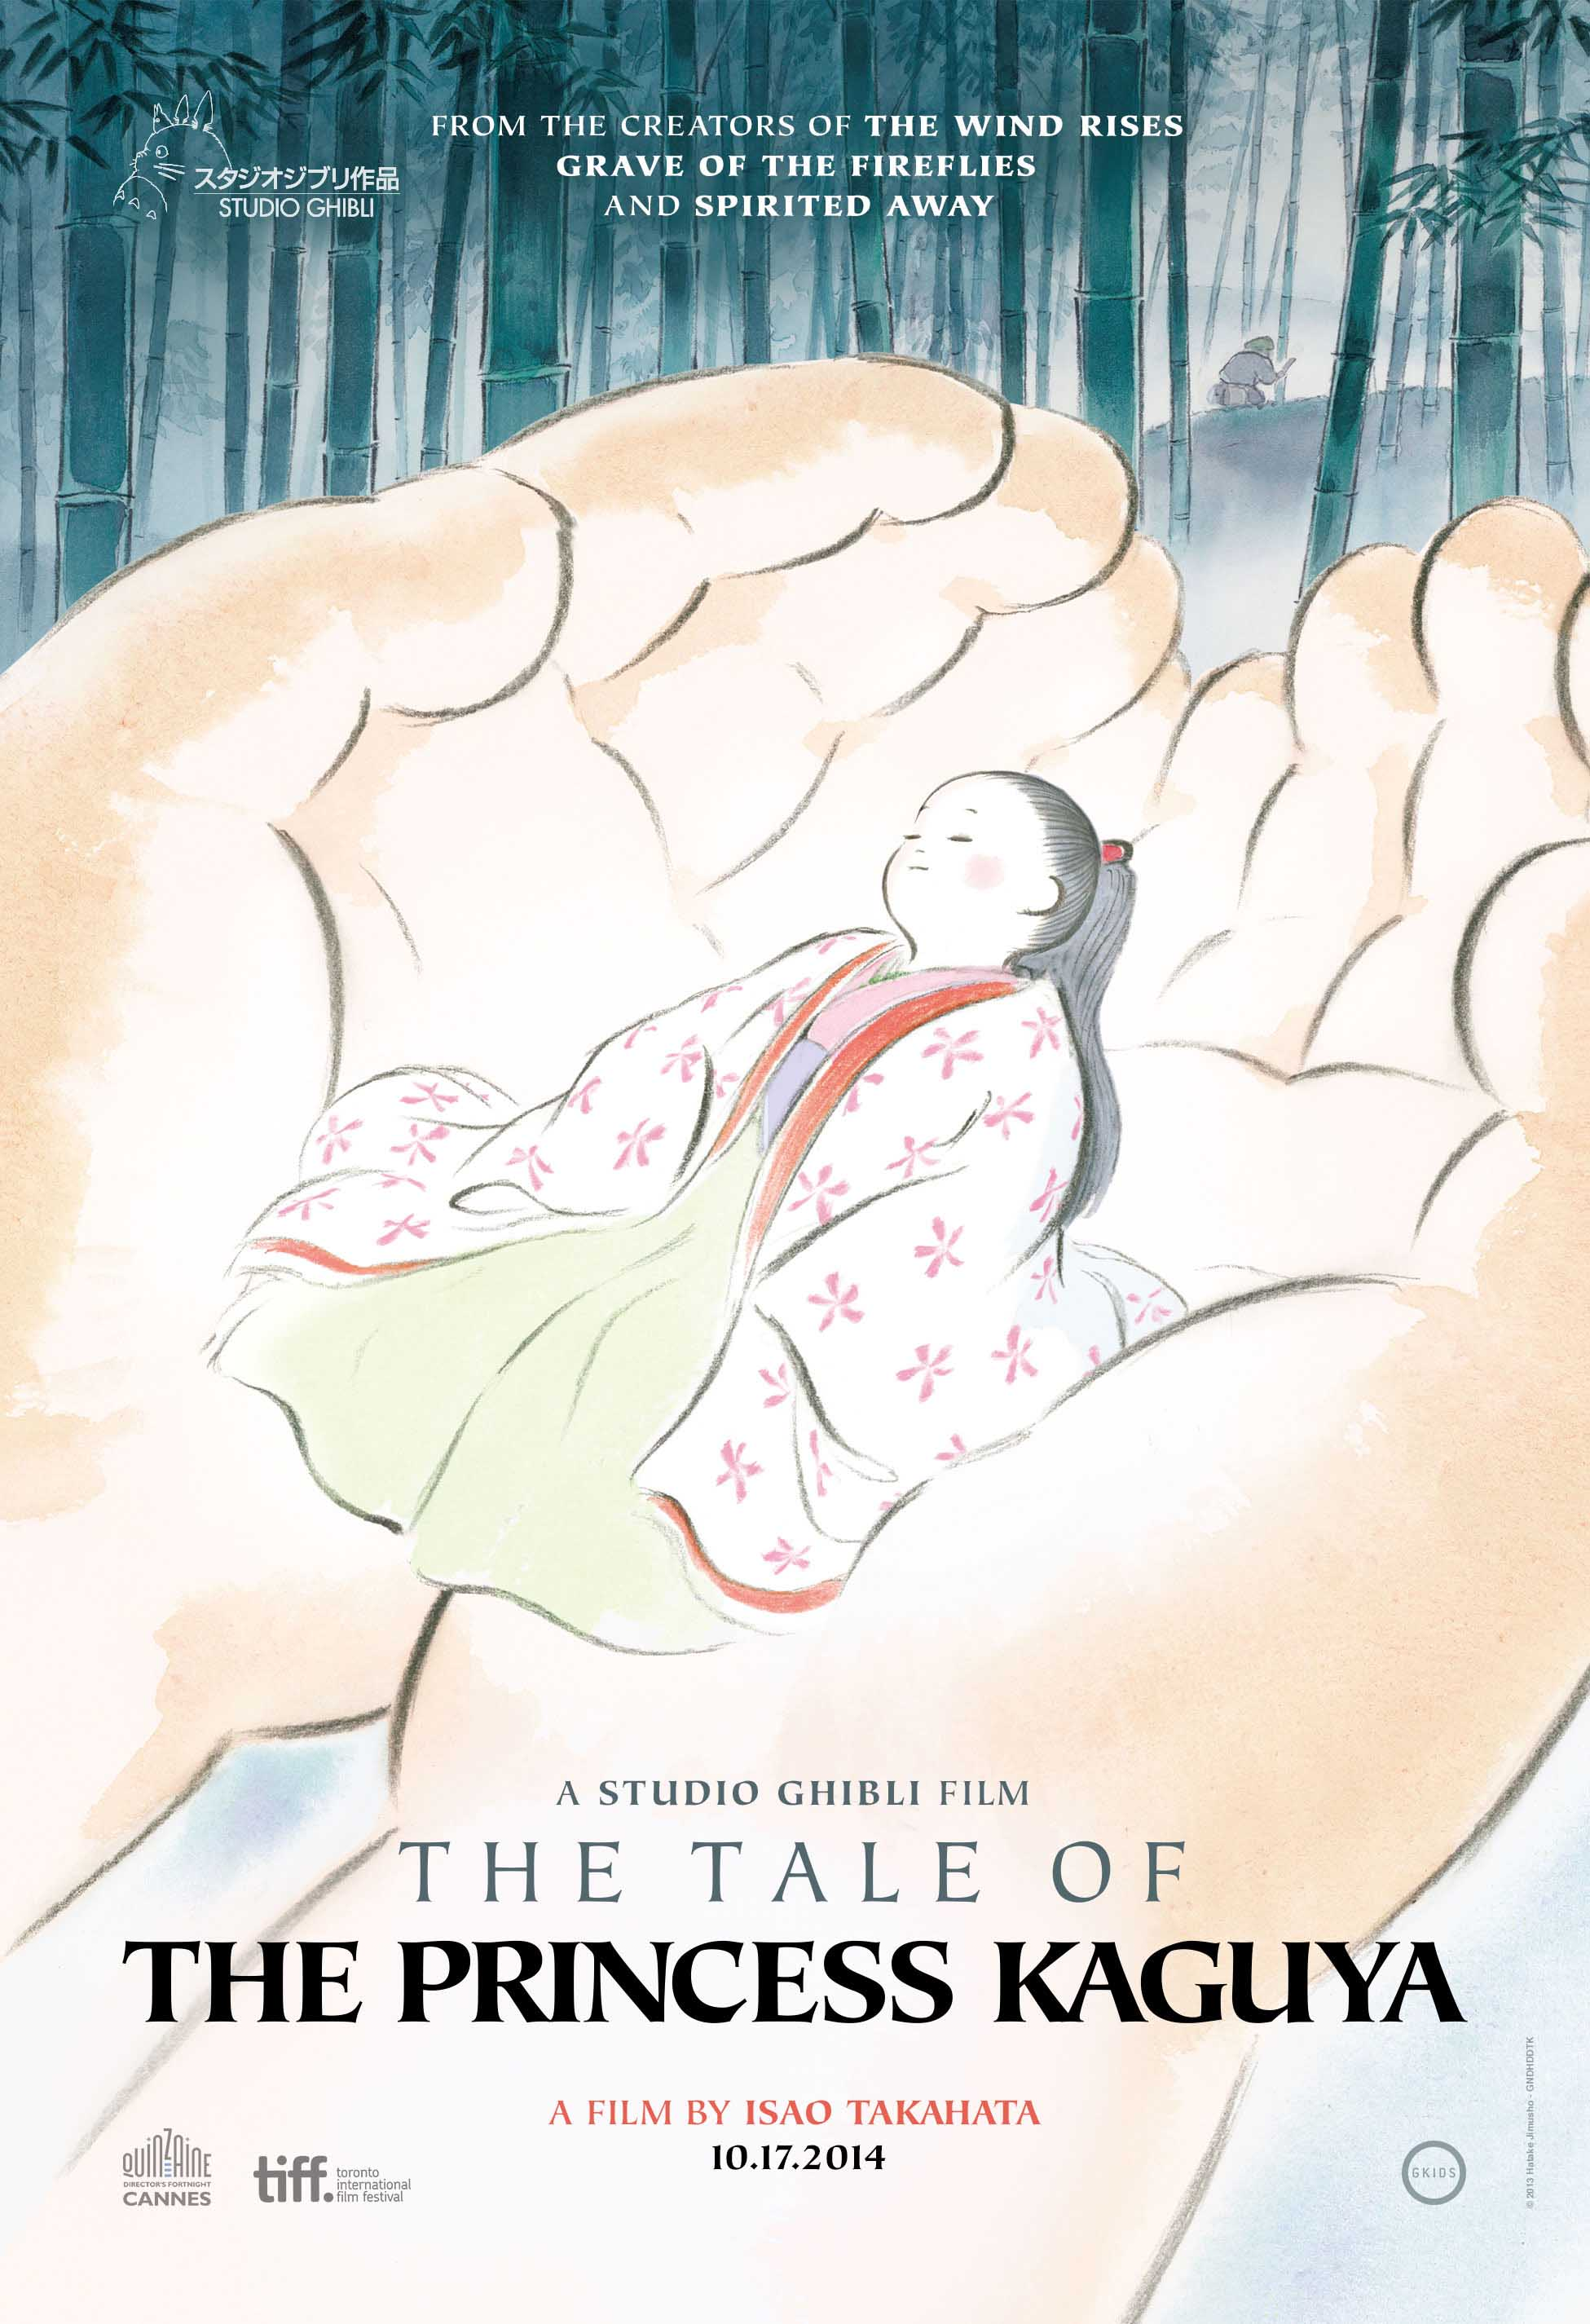 The Tale of Princess Kaguya (2013)